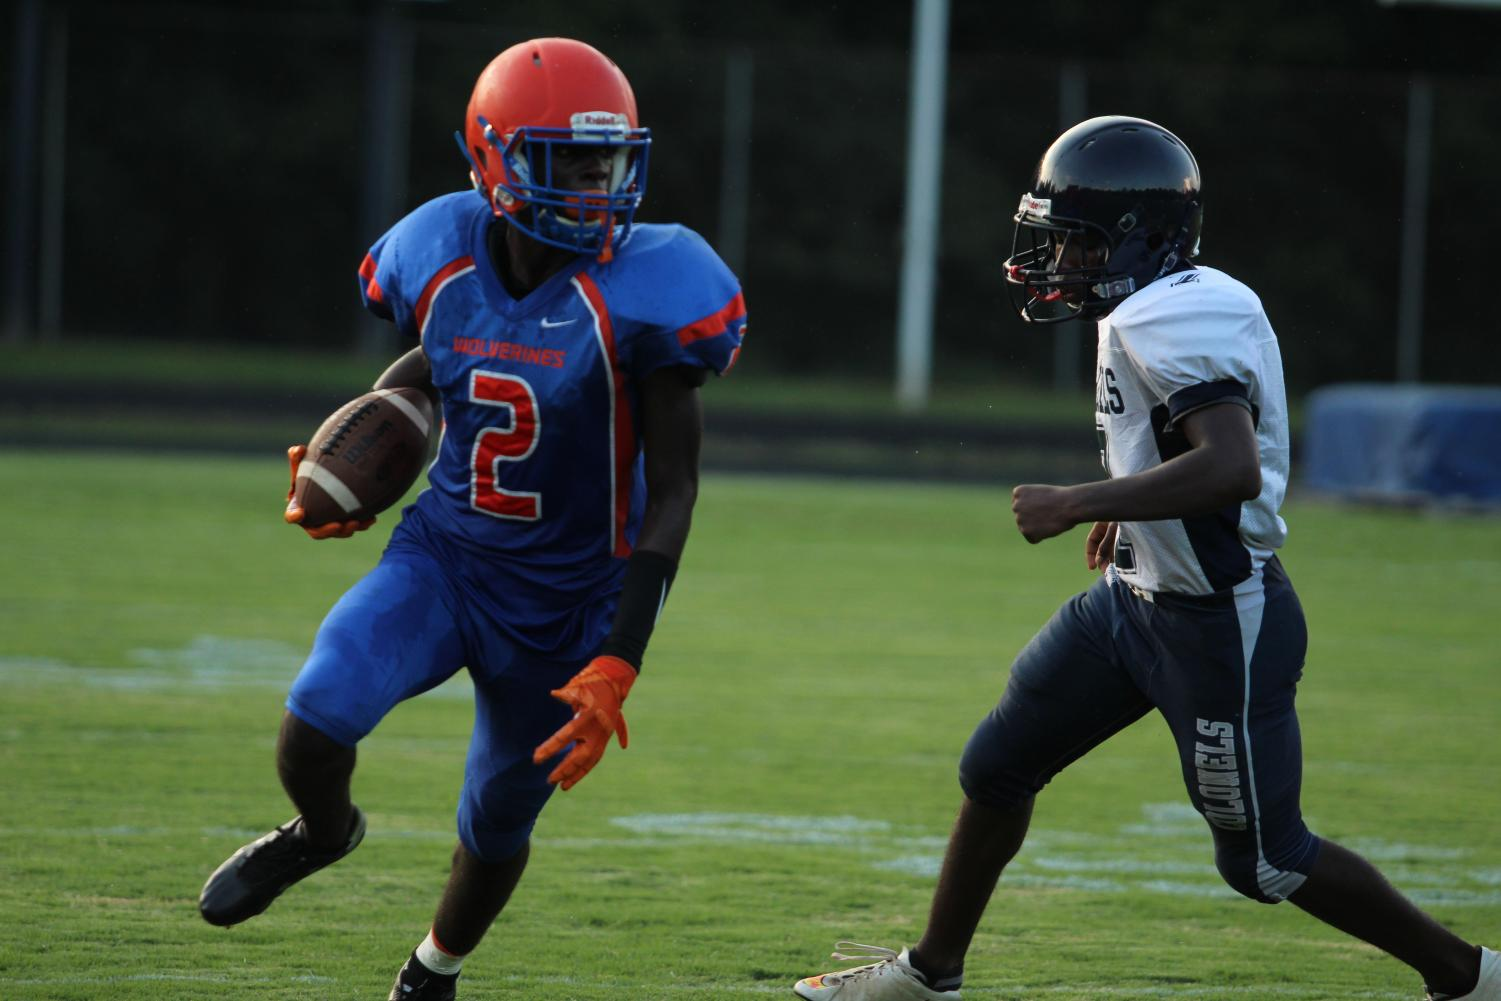 JV Football's first game against the Magruder Colonels on September 6